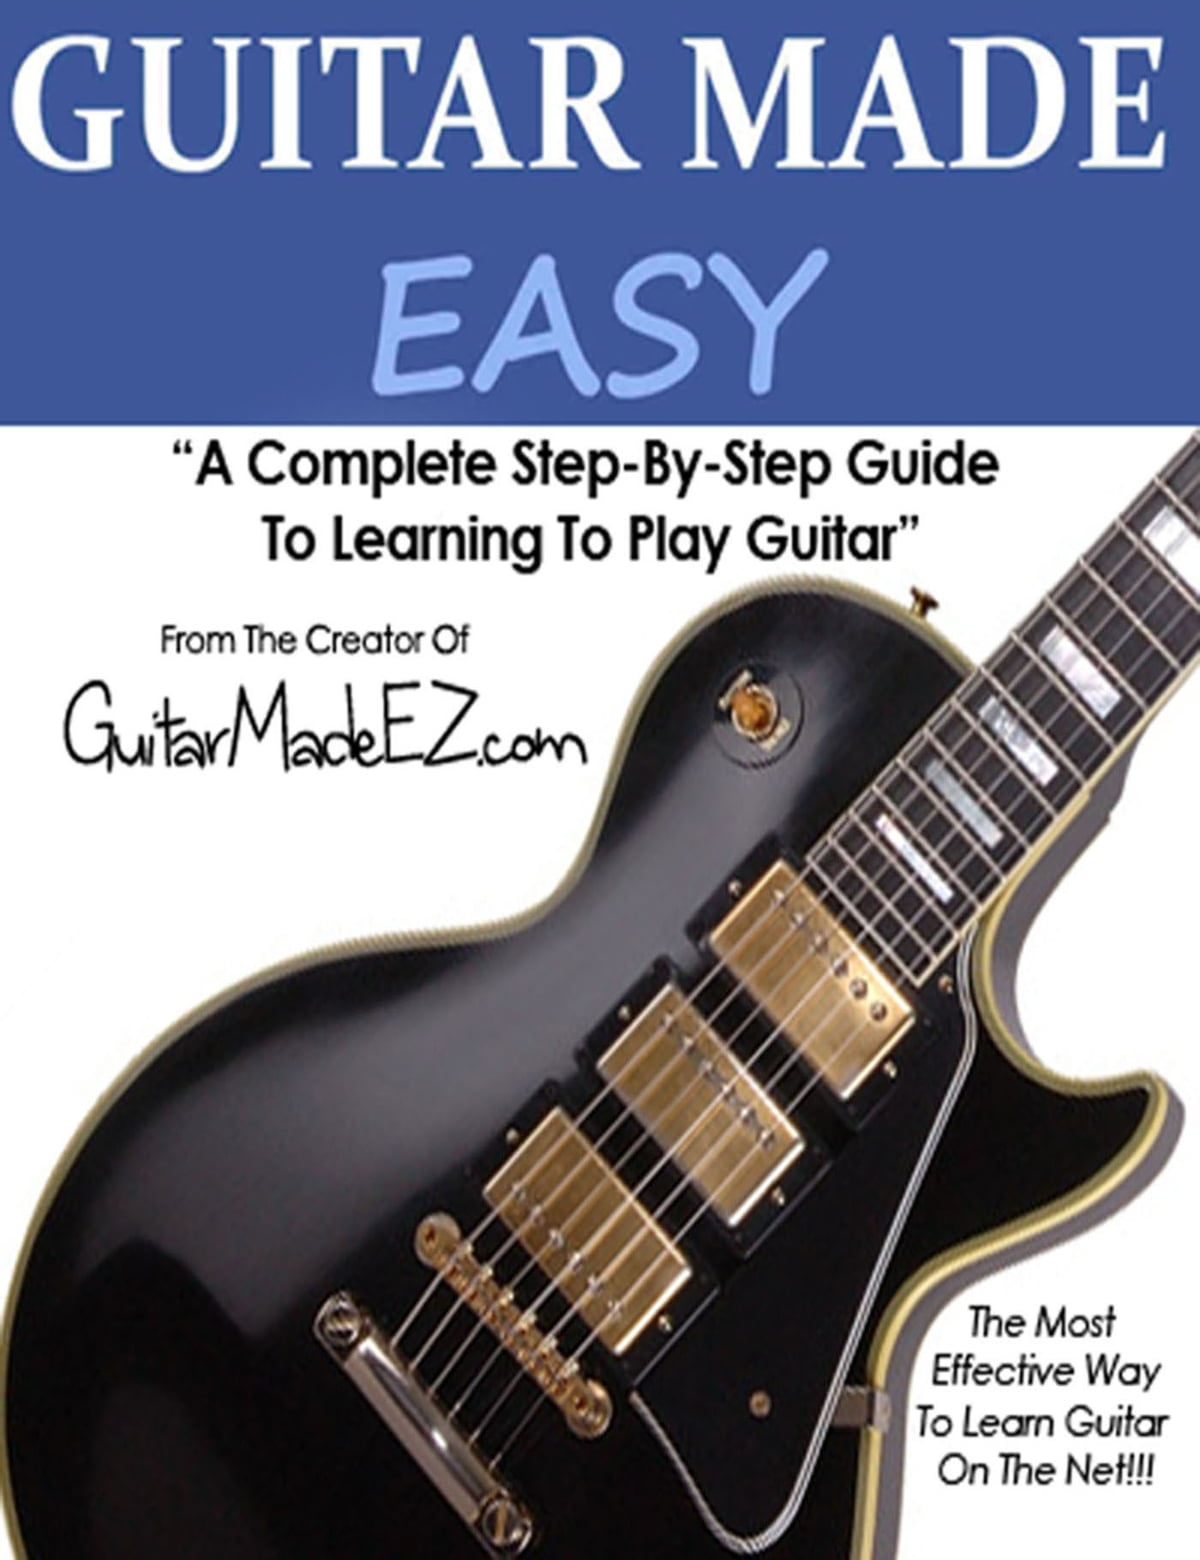 Steps To Learning Guitar : guitar made easy a complete step by step guide to learning guitar ebook by justin sours ~ Russianpoet.info Haus und Dekorationen